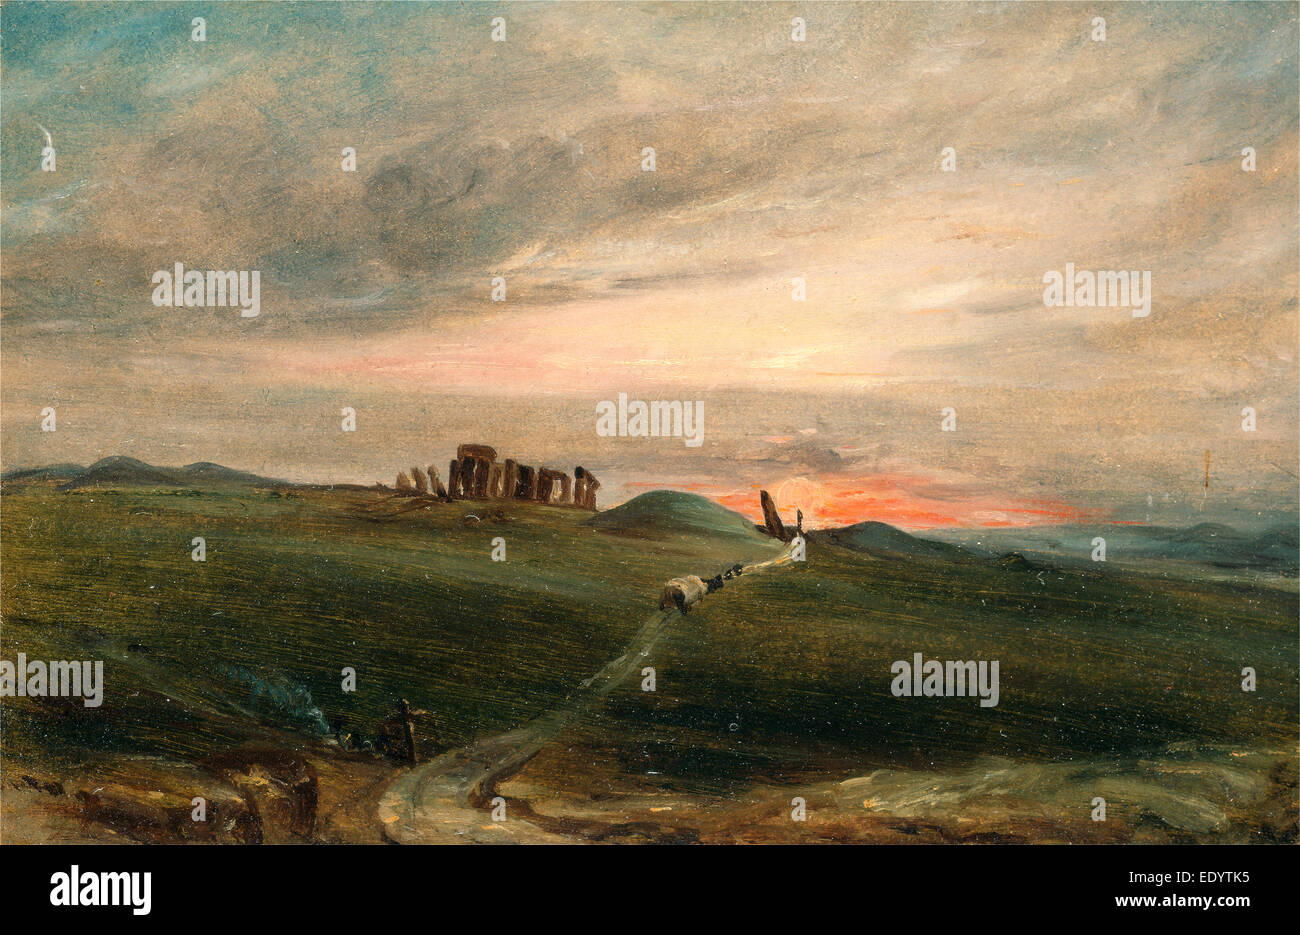 Stonehenge at Sunset, After John Constable, 1776-1837, British Stock Photo